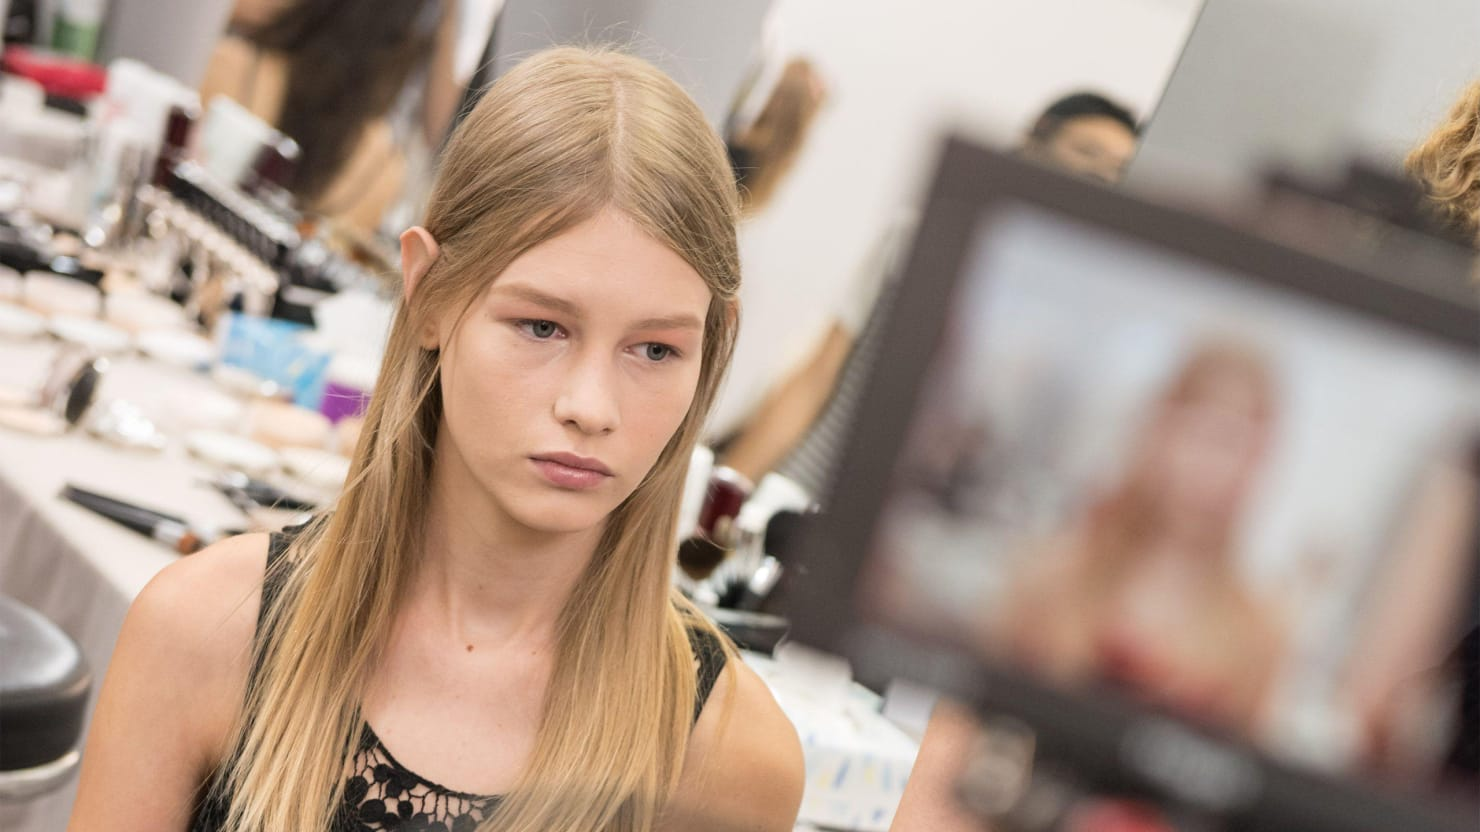 Is Sofia Mechetner, 14, Too Young to Model for Christian Dior?